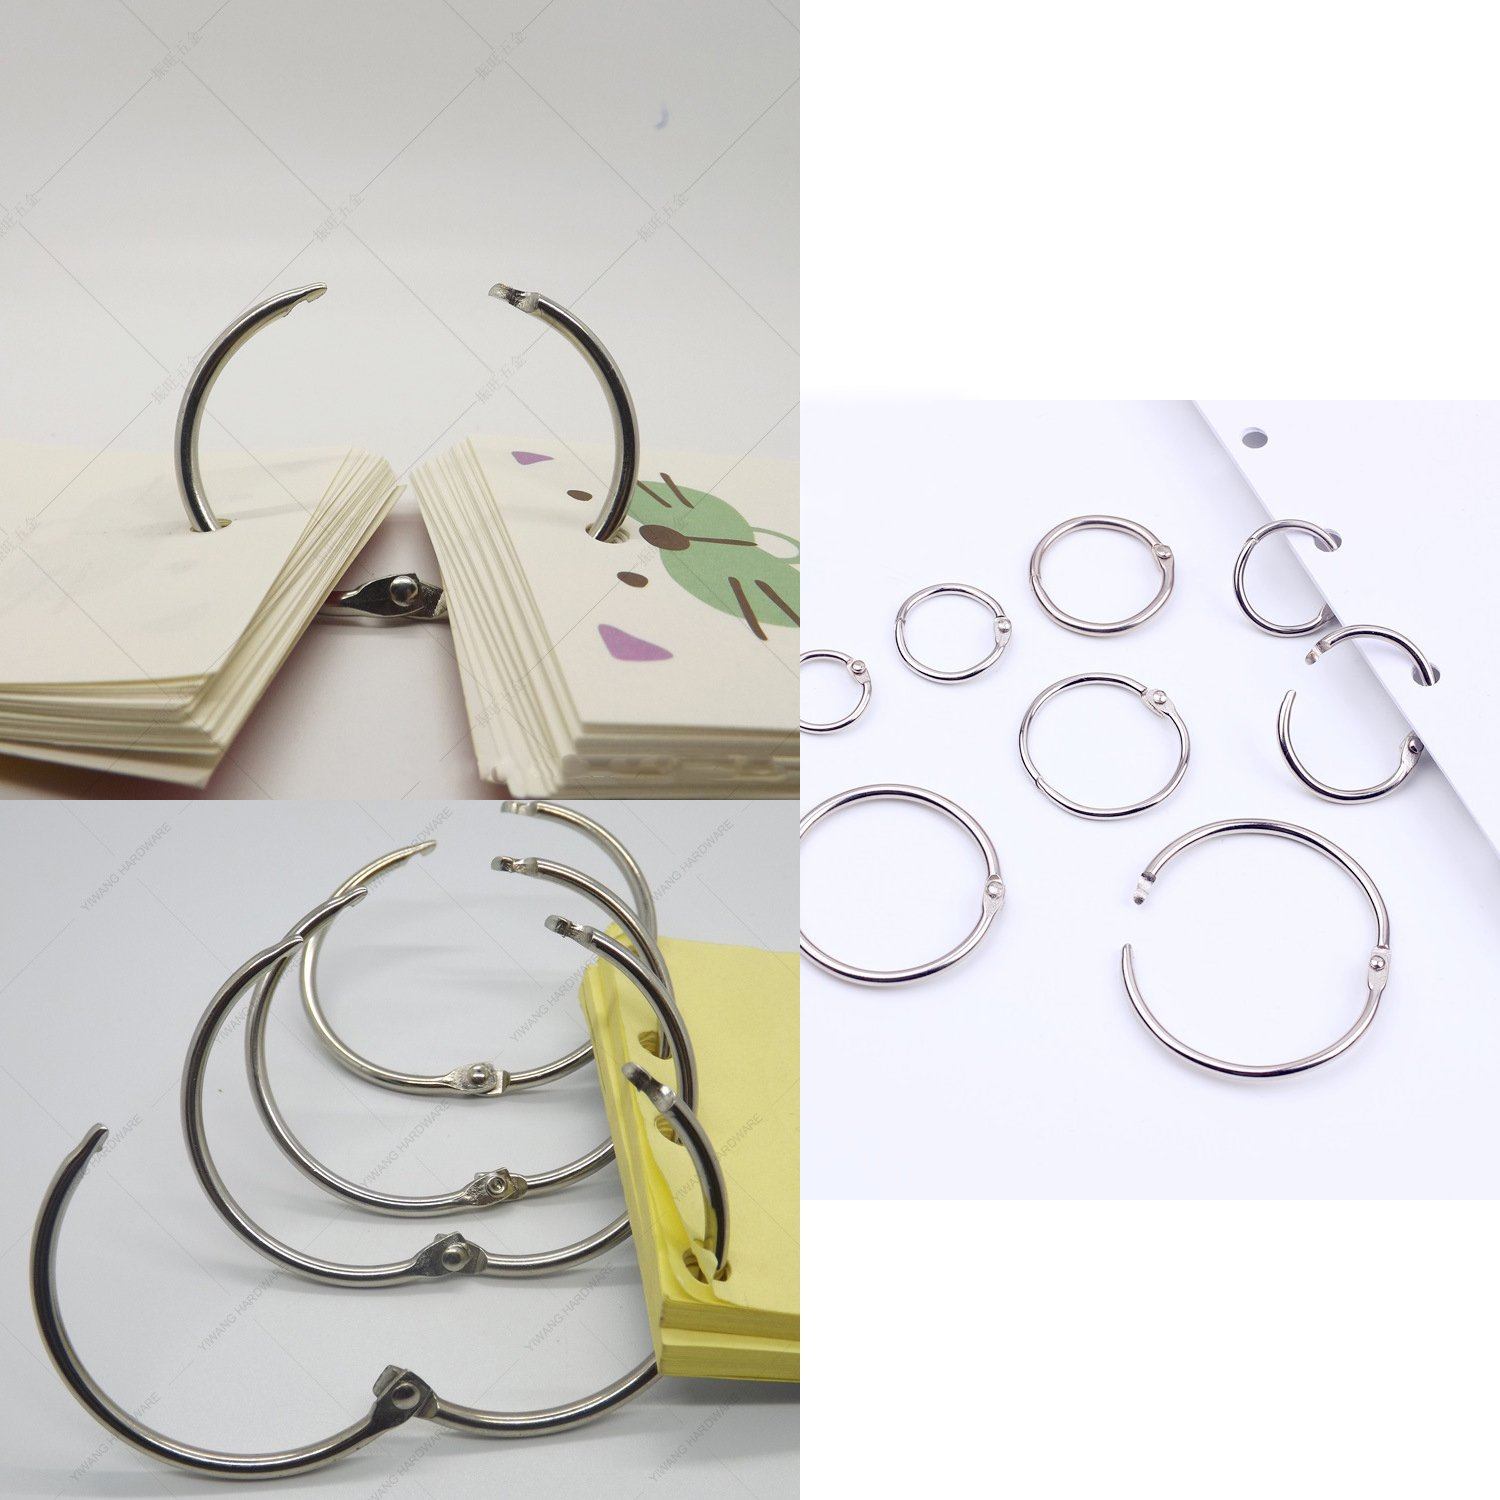 Regpre Loose Leaf Binder Rings 3/4 Inch Binder Rings 0.75 and 1 Inch Binder Rings Set of 100 and Single Hole Punch by Regpre (Image #6)